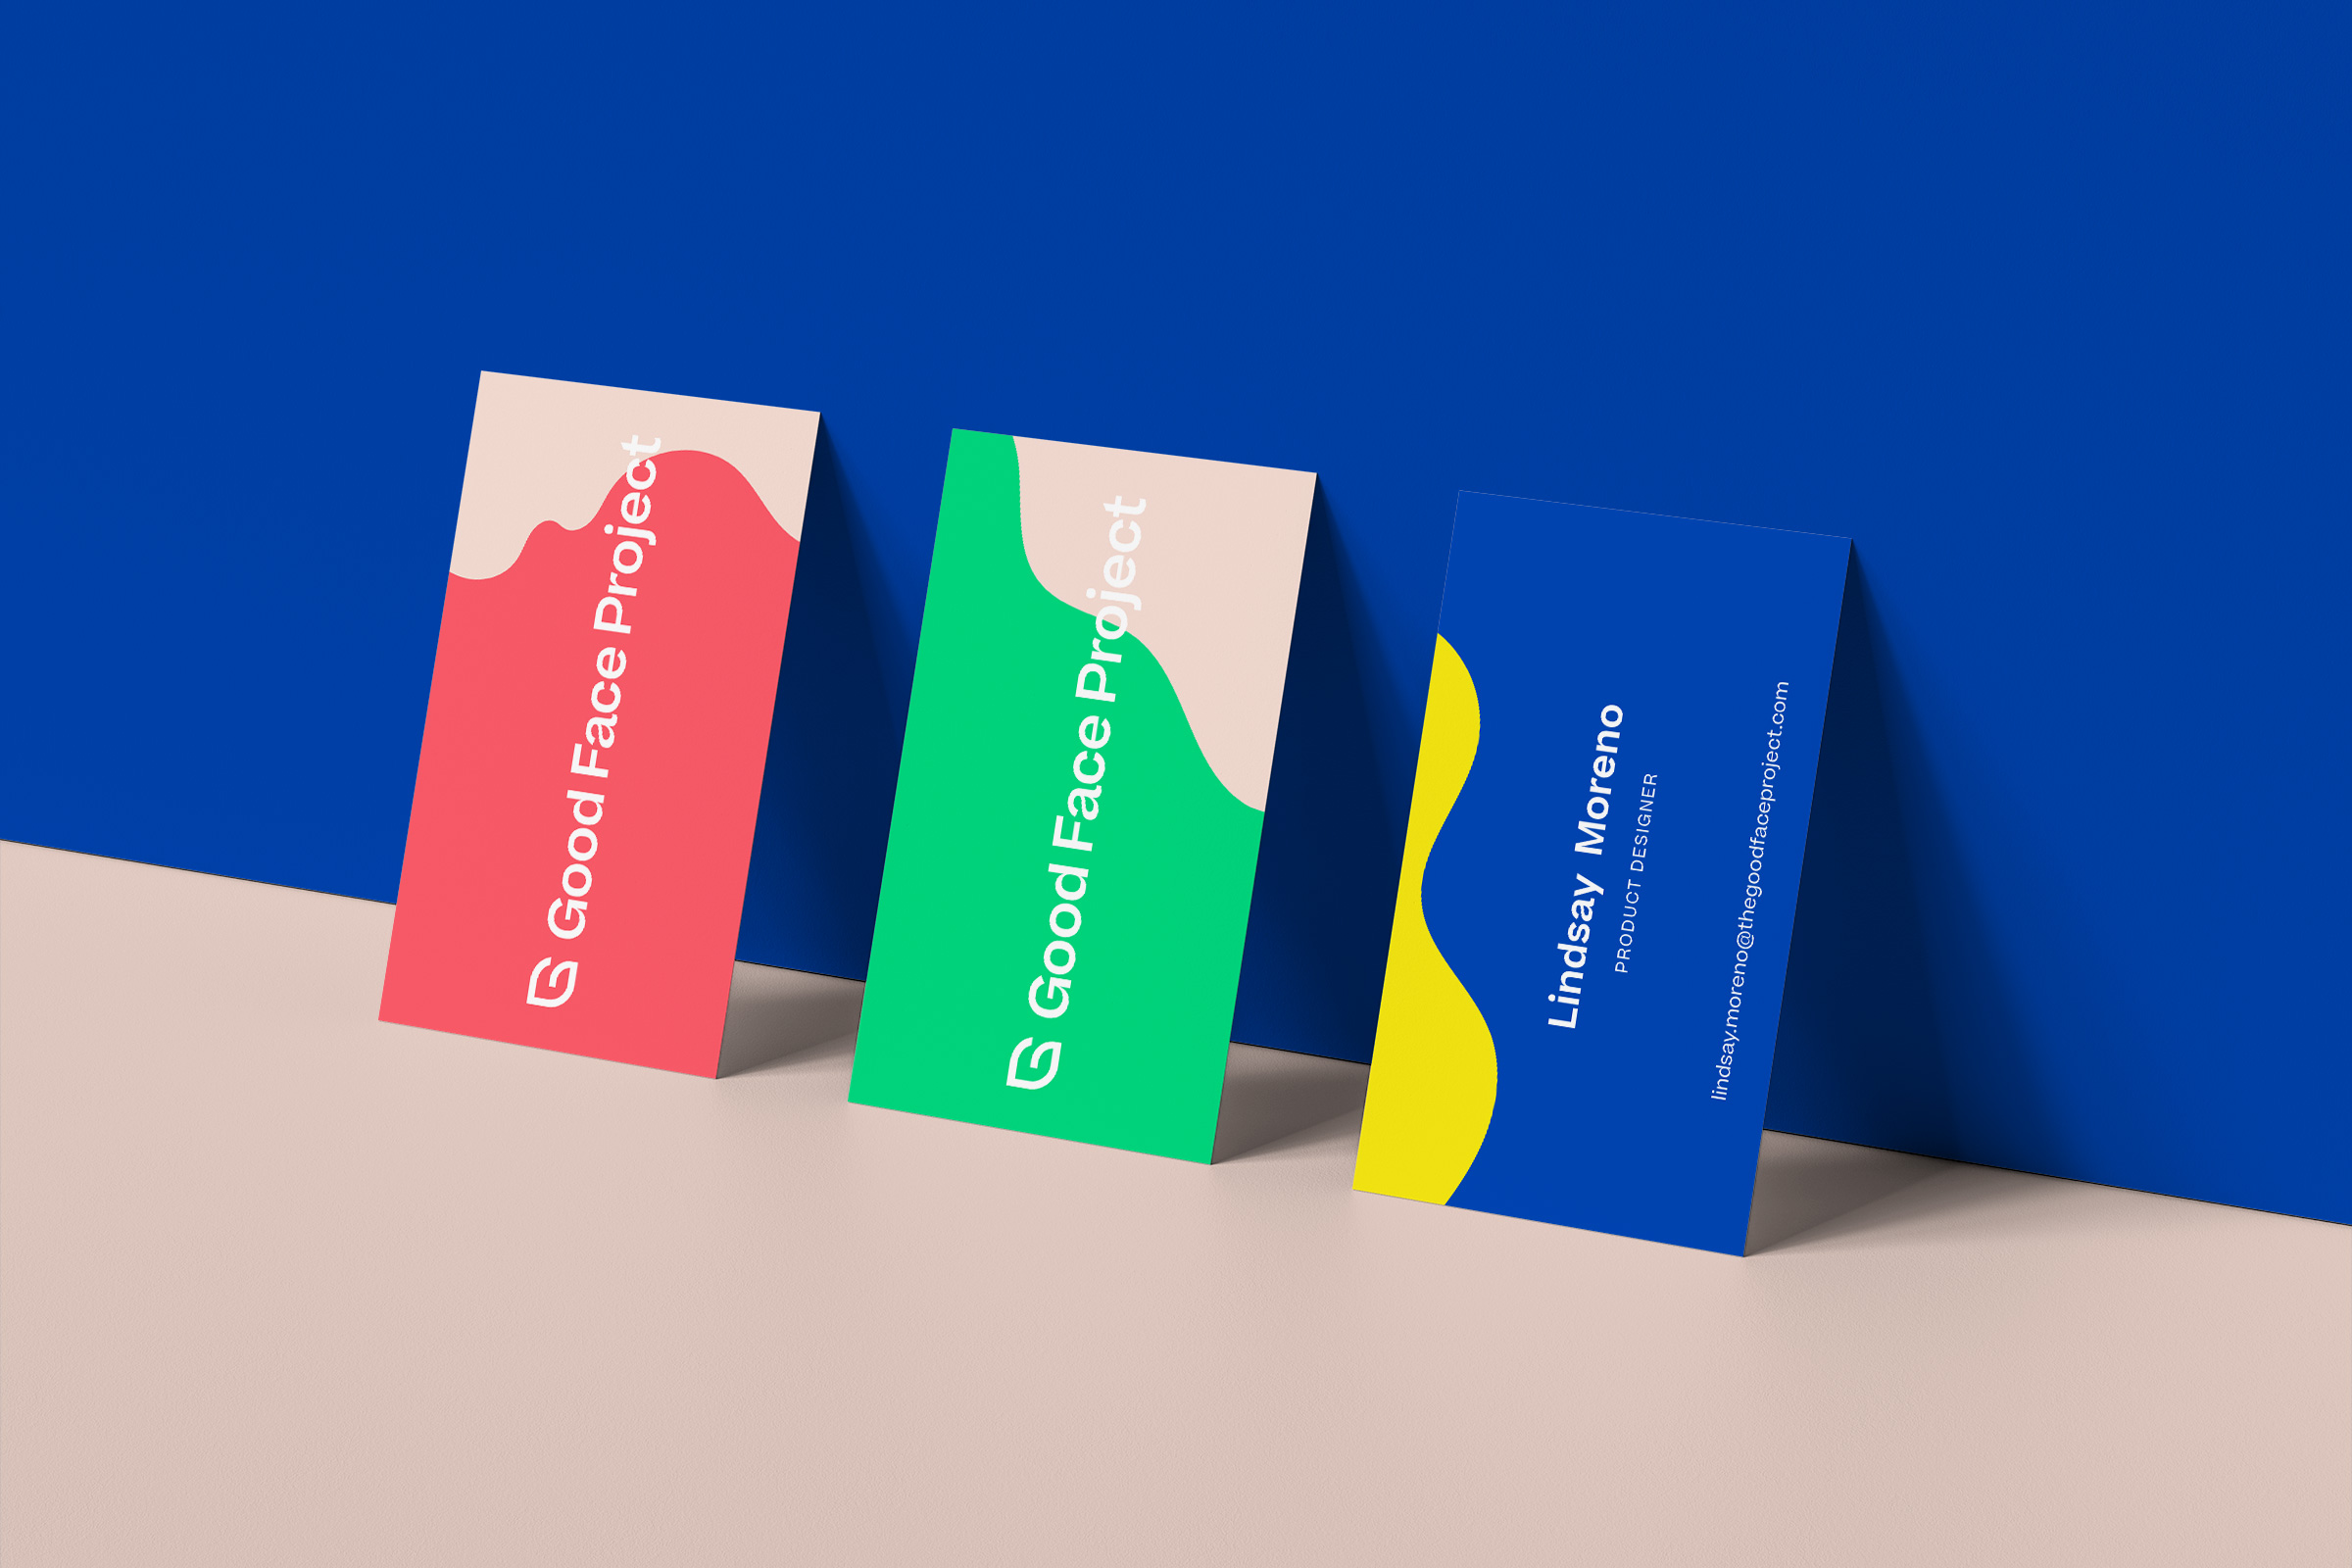 Collateral Design for The Good Face Project by Condensed